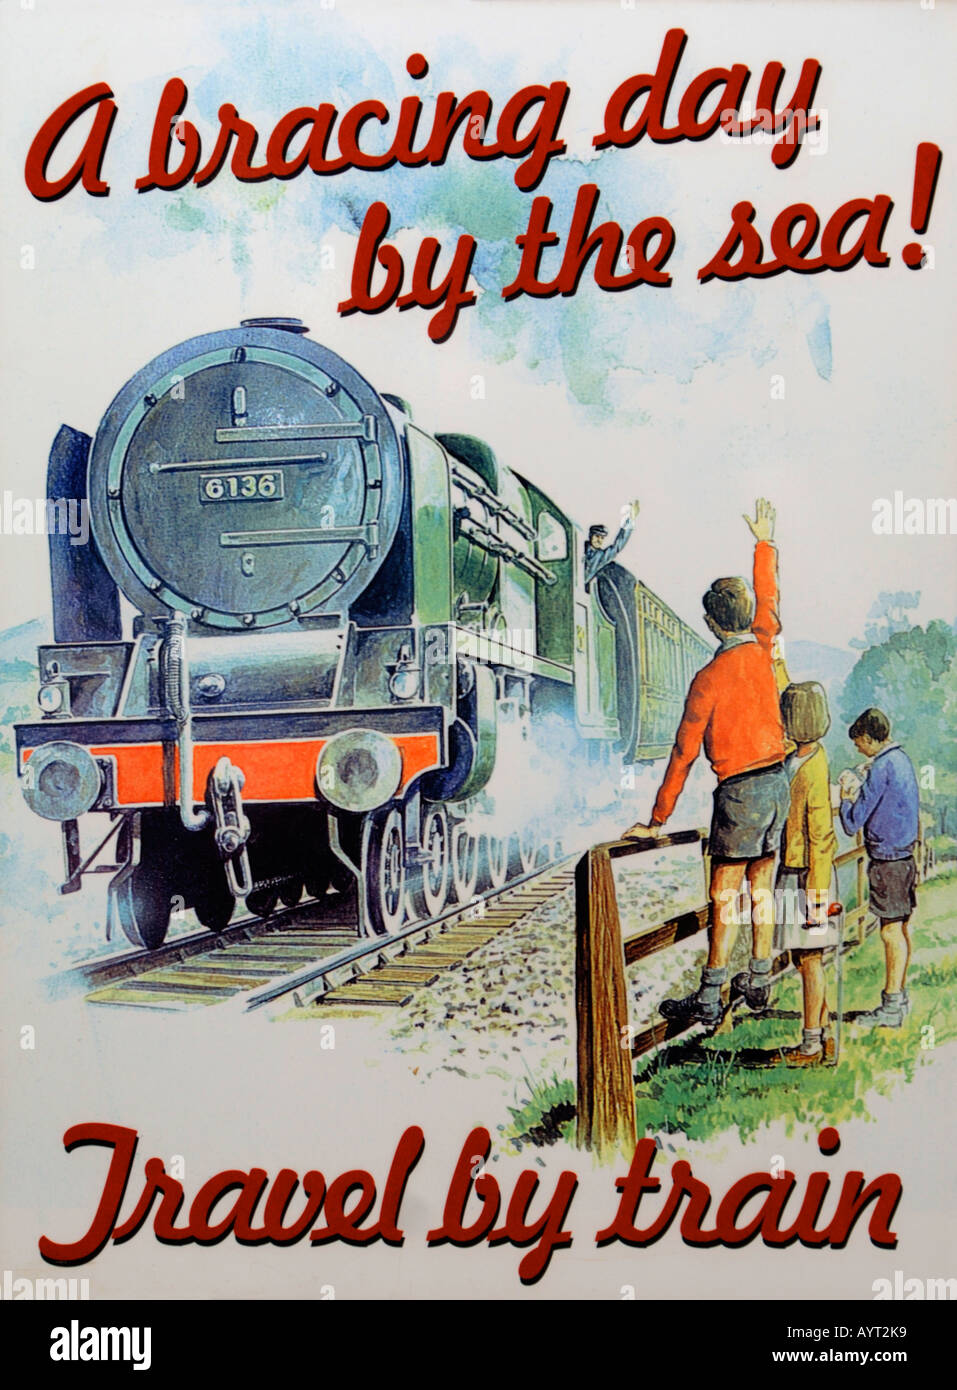 Old fashioned Travel by train poster - Stock Image